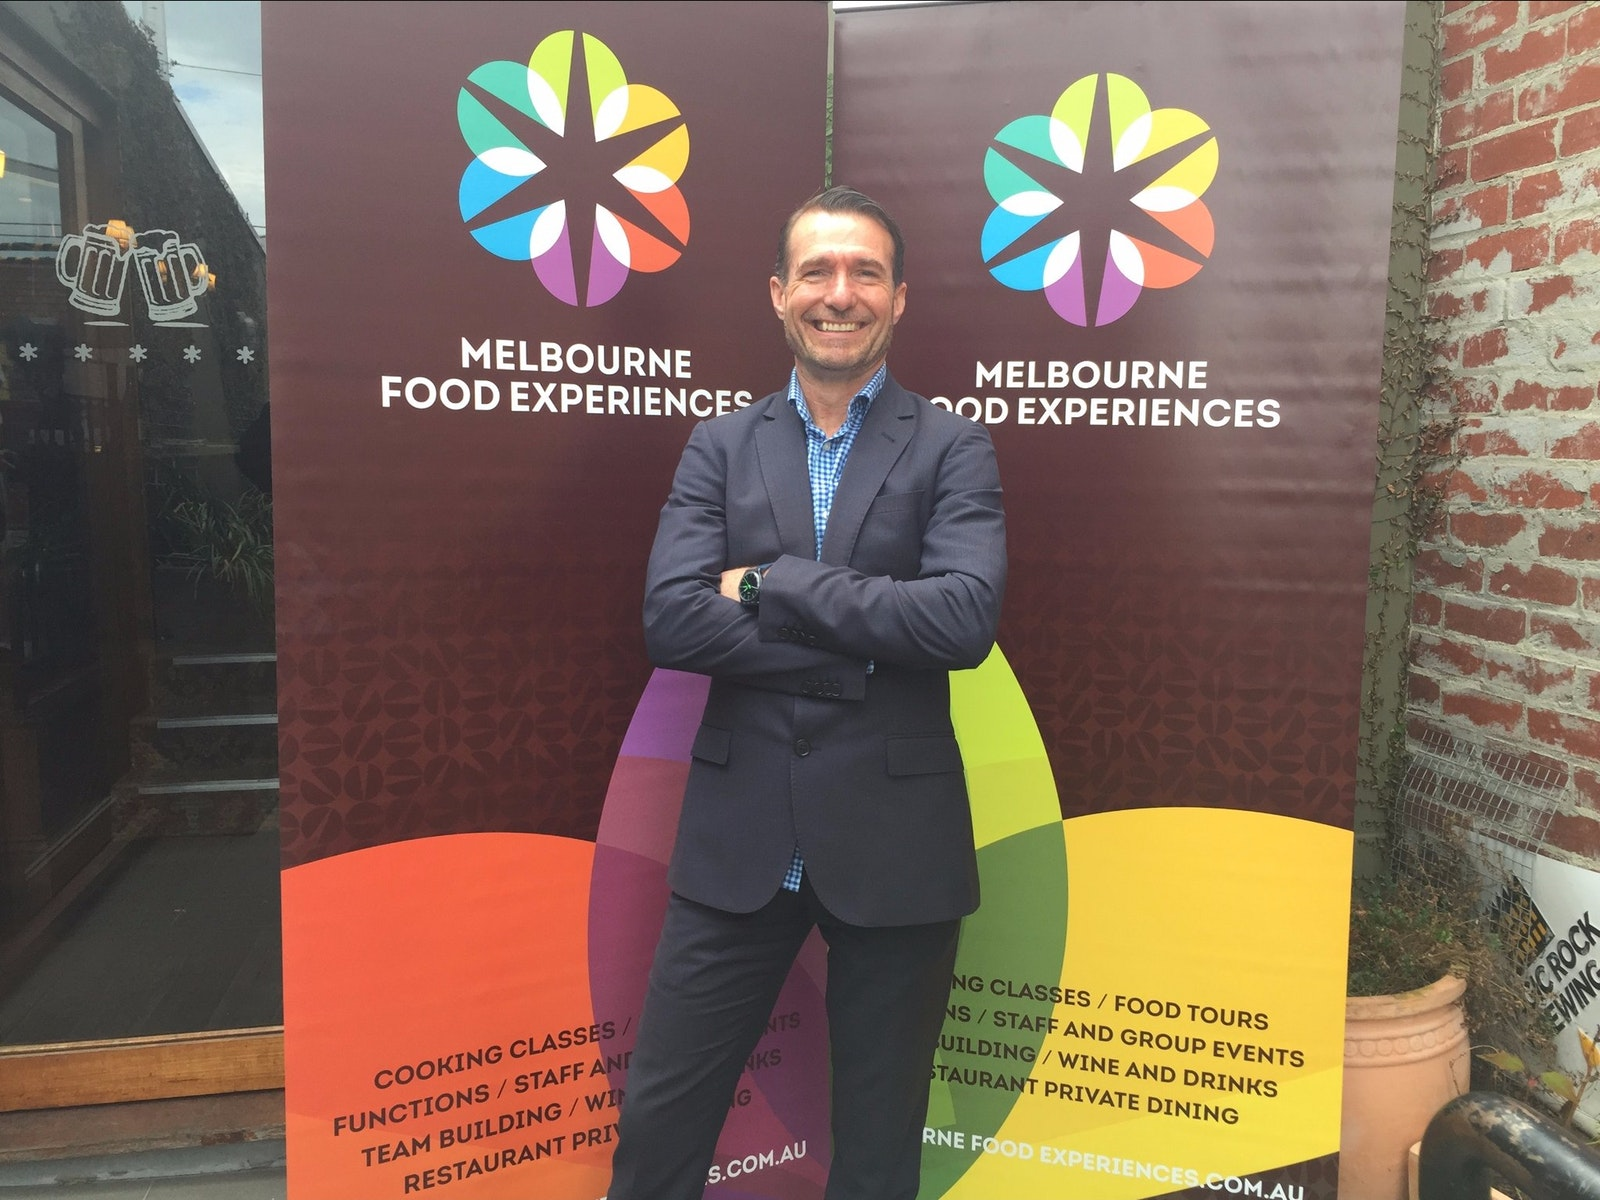 Allan Campion, Founder of Melbourne Food Experiences